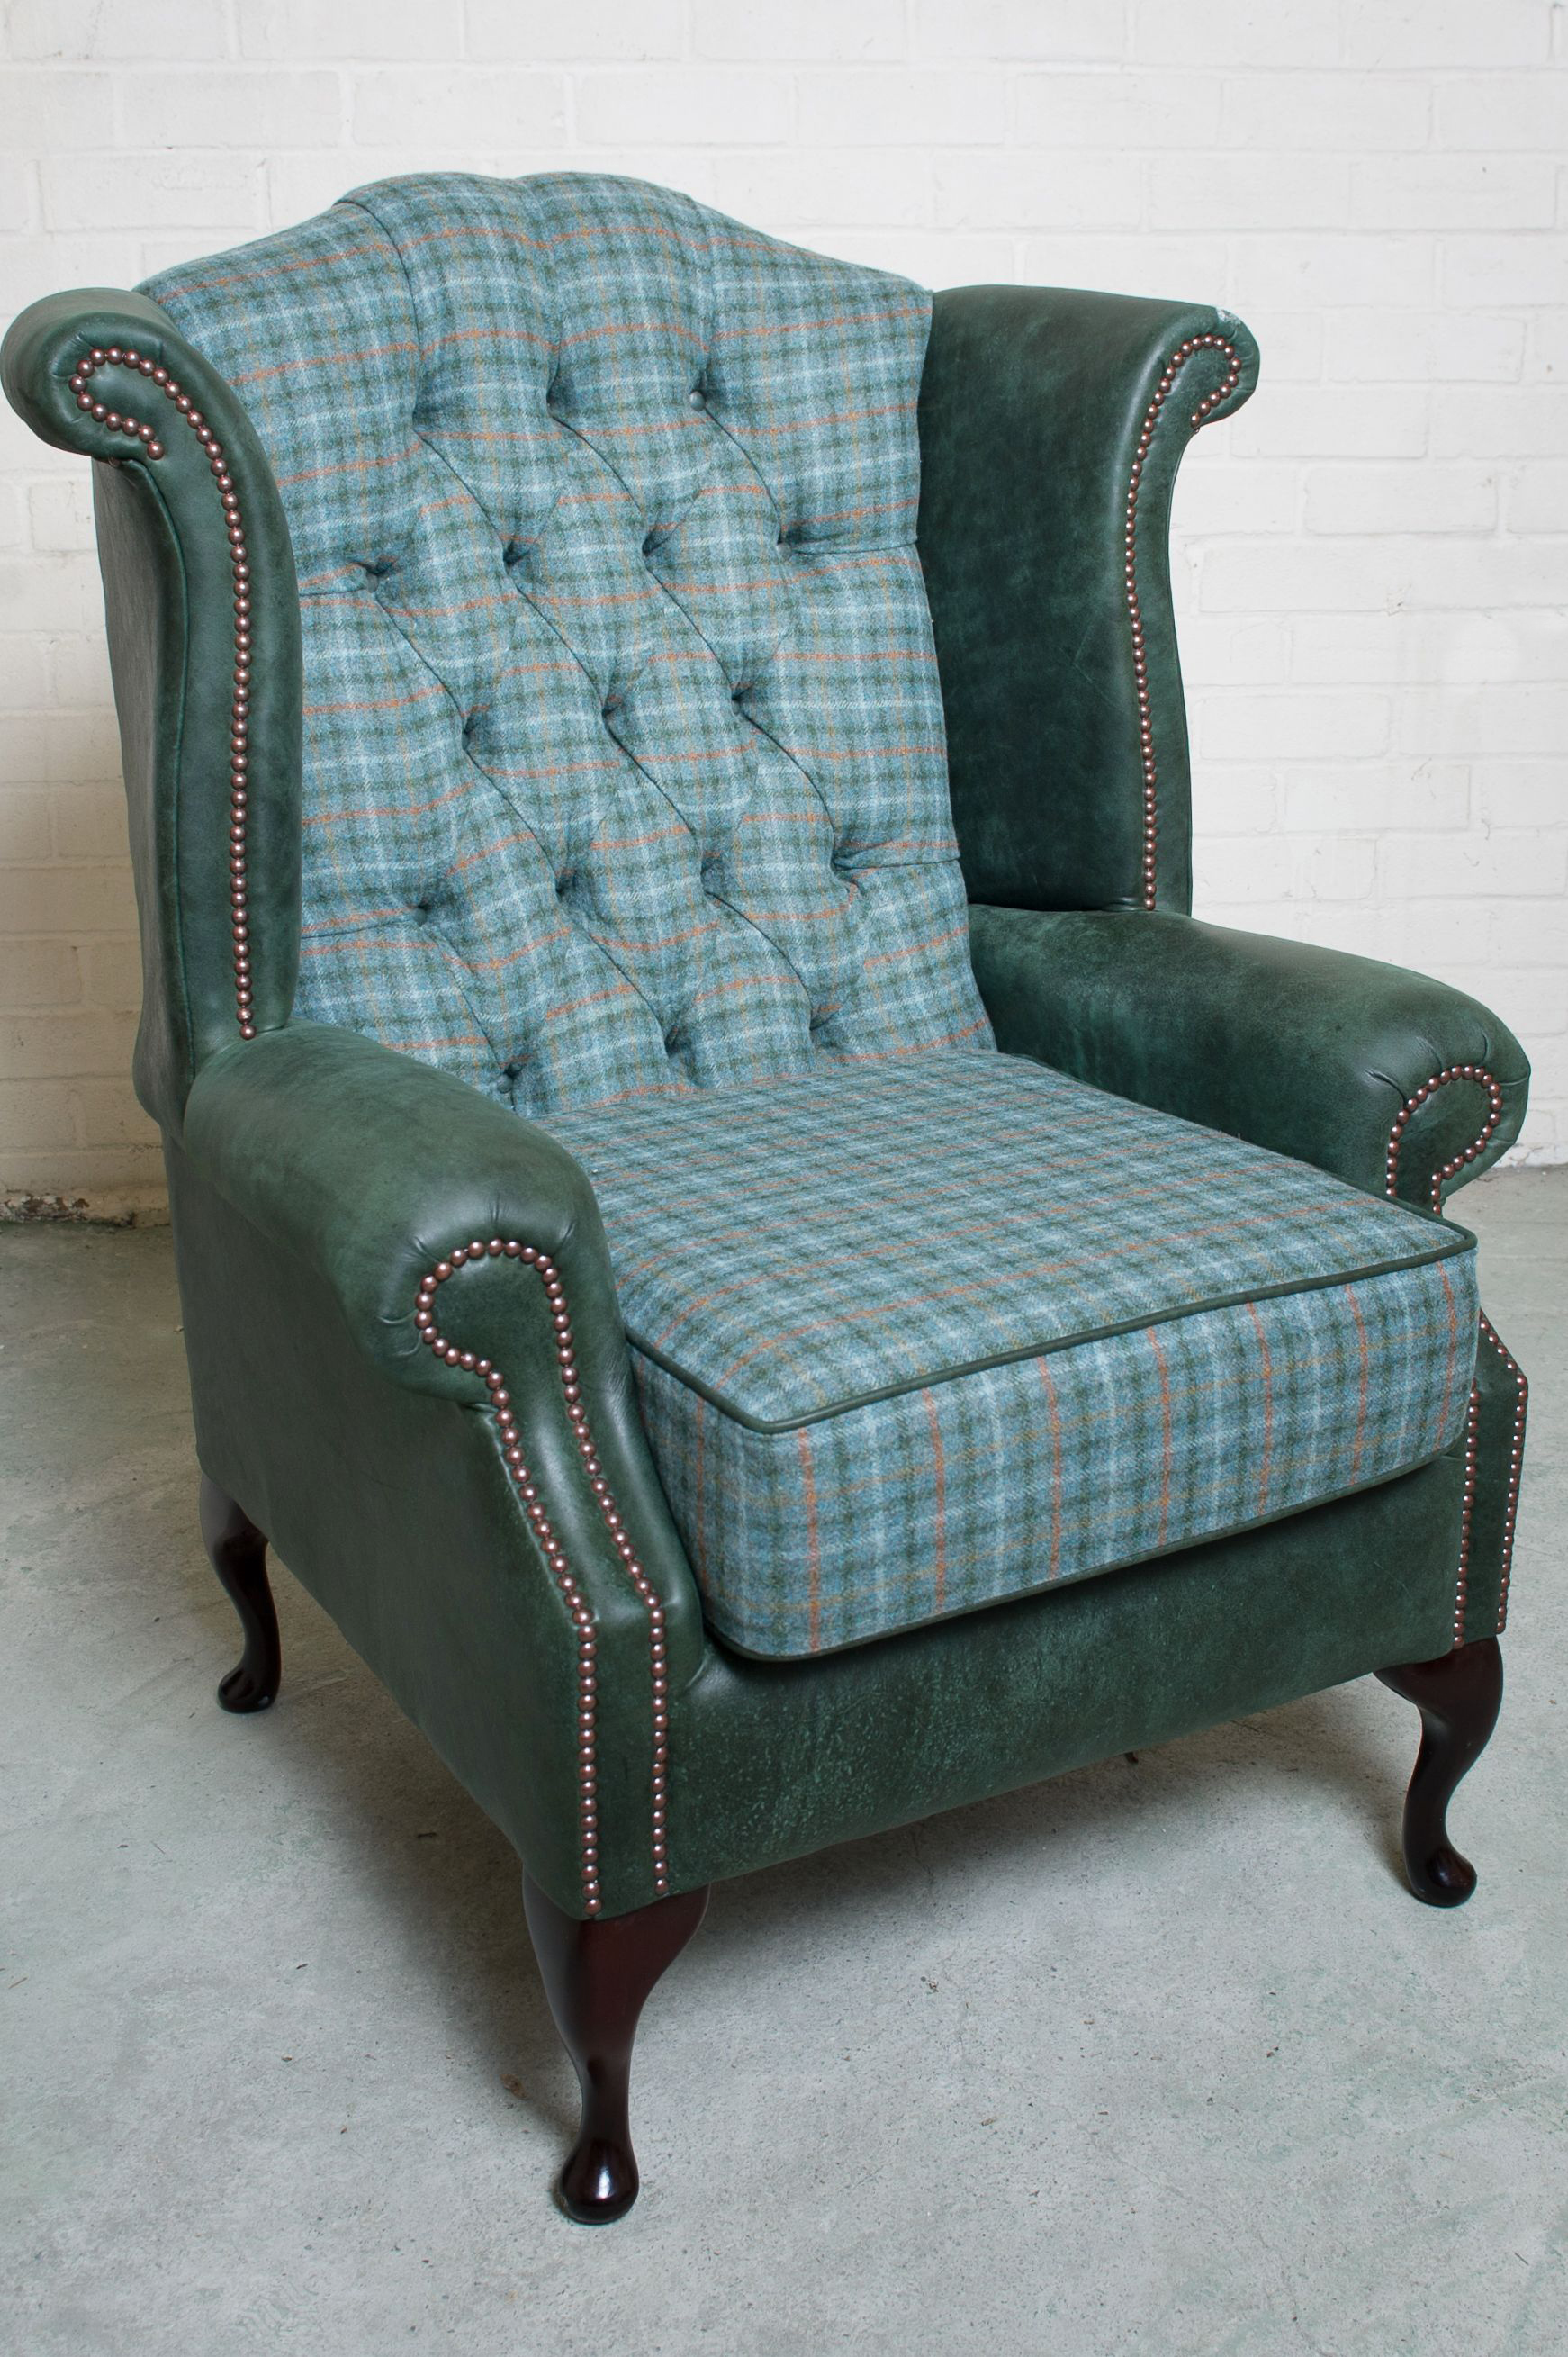 Teal Wingback Chair Vintage Leather Tweed Wingback Chair